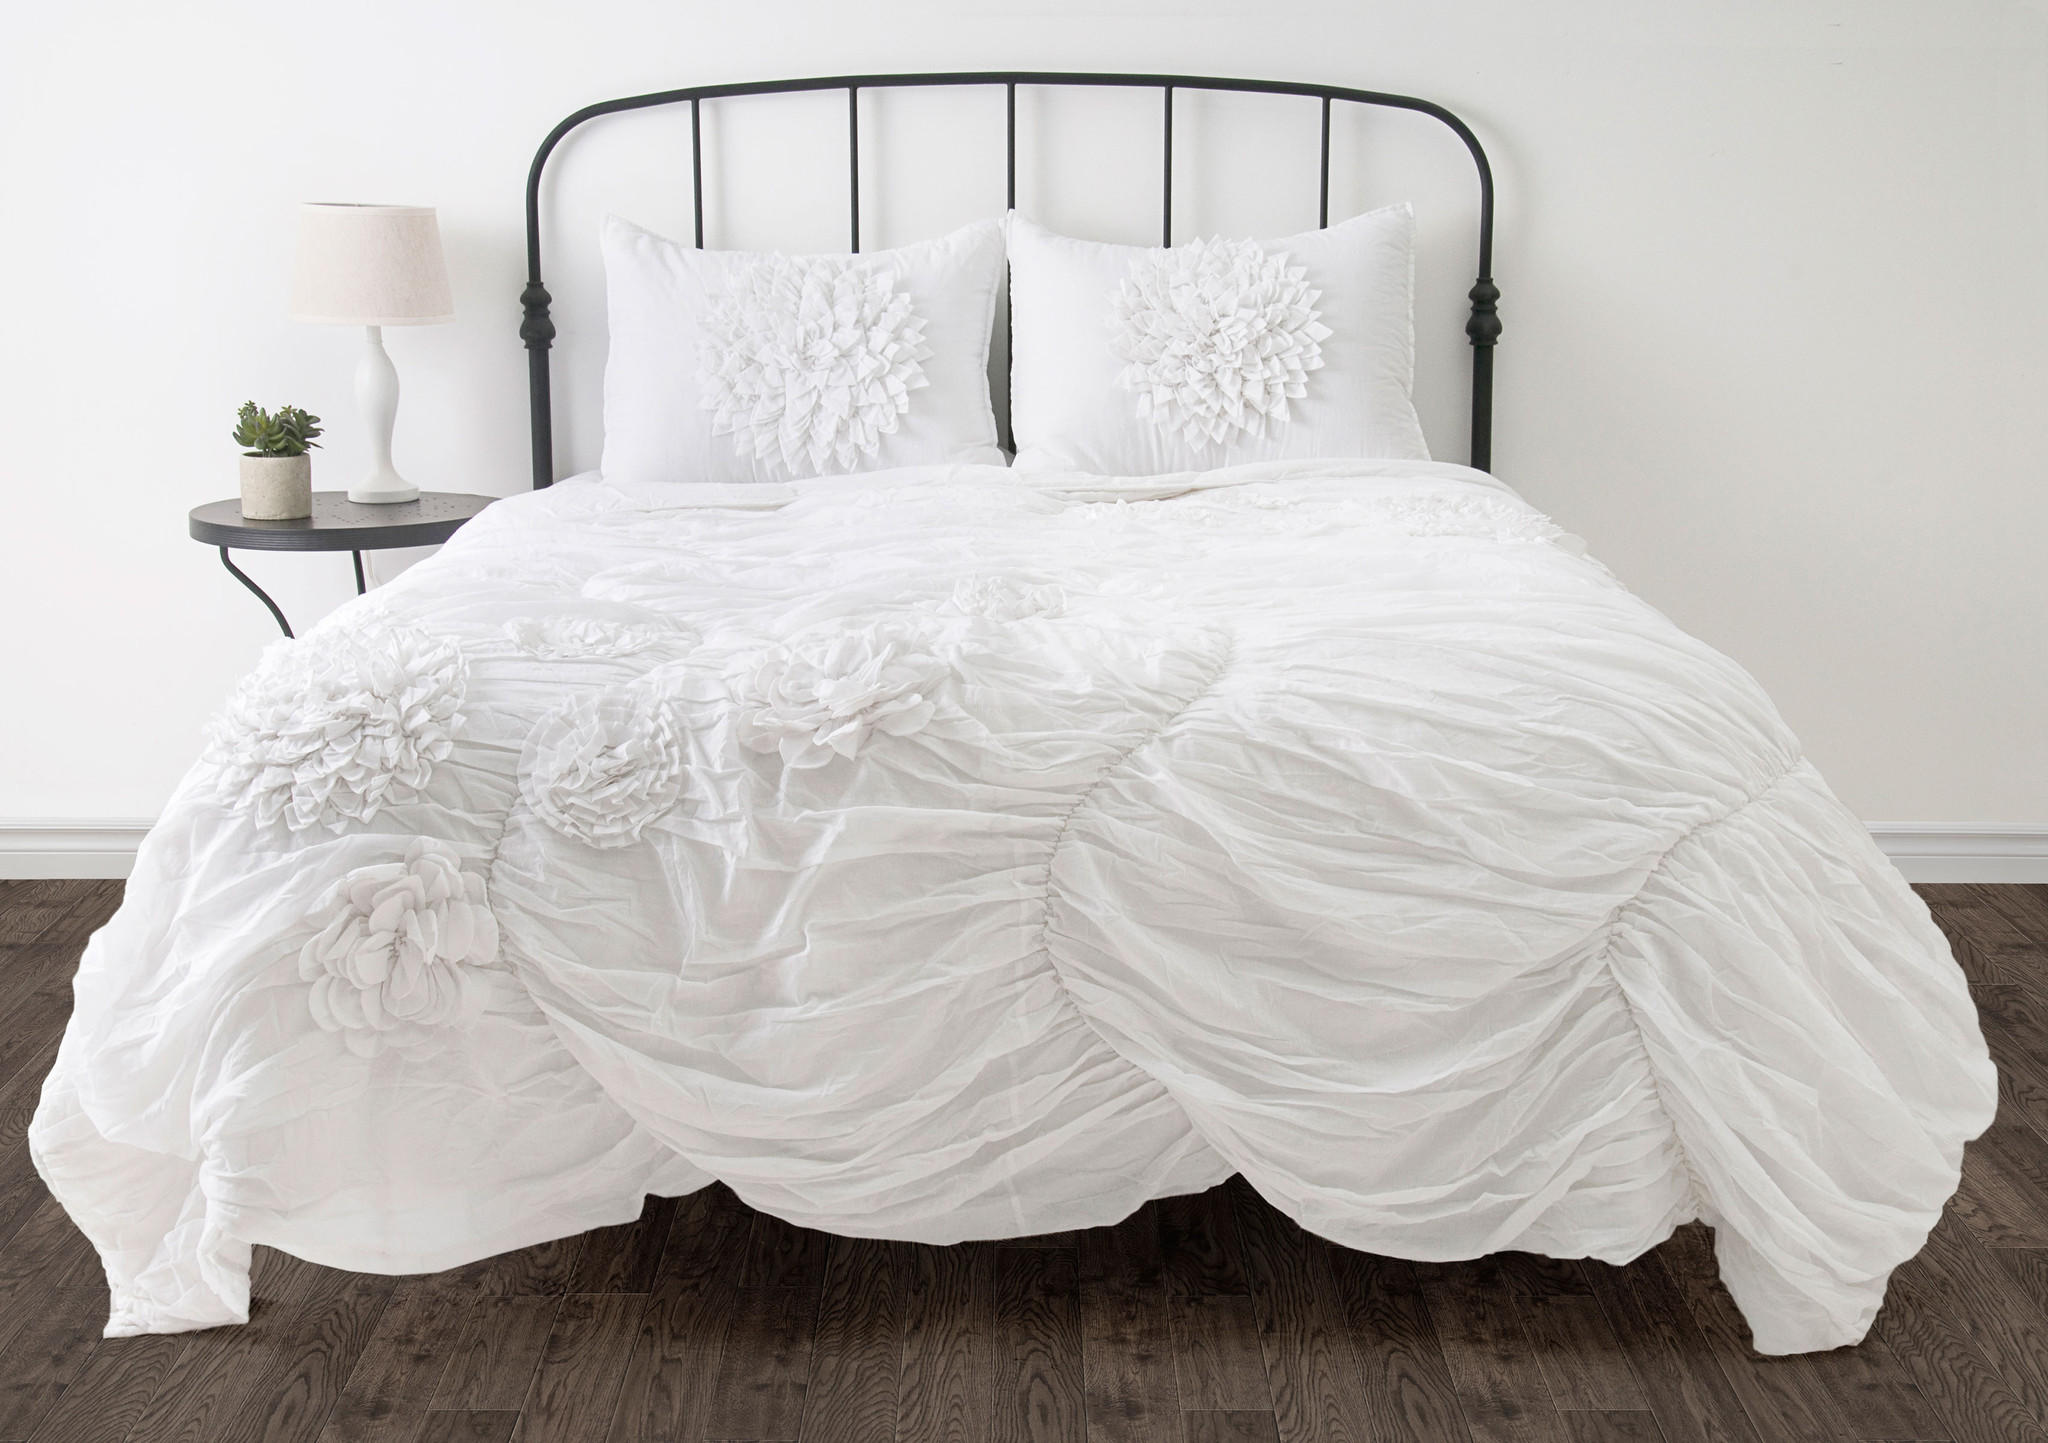 Hush White Twin Size Comforter Bed Set From Michael Anthony